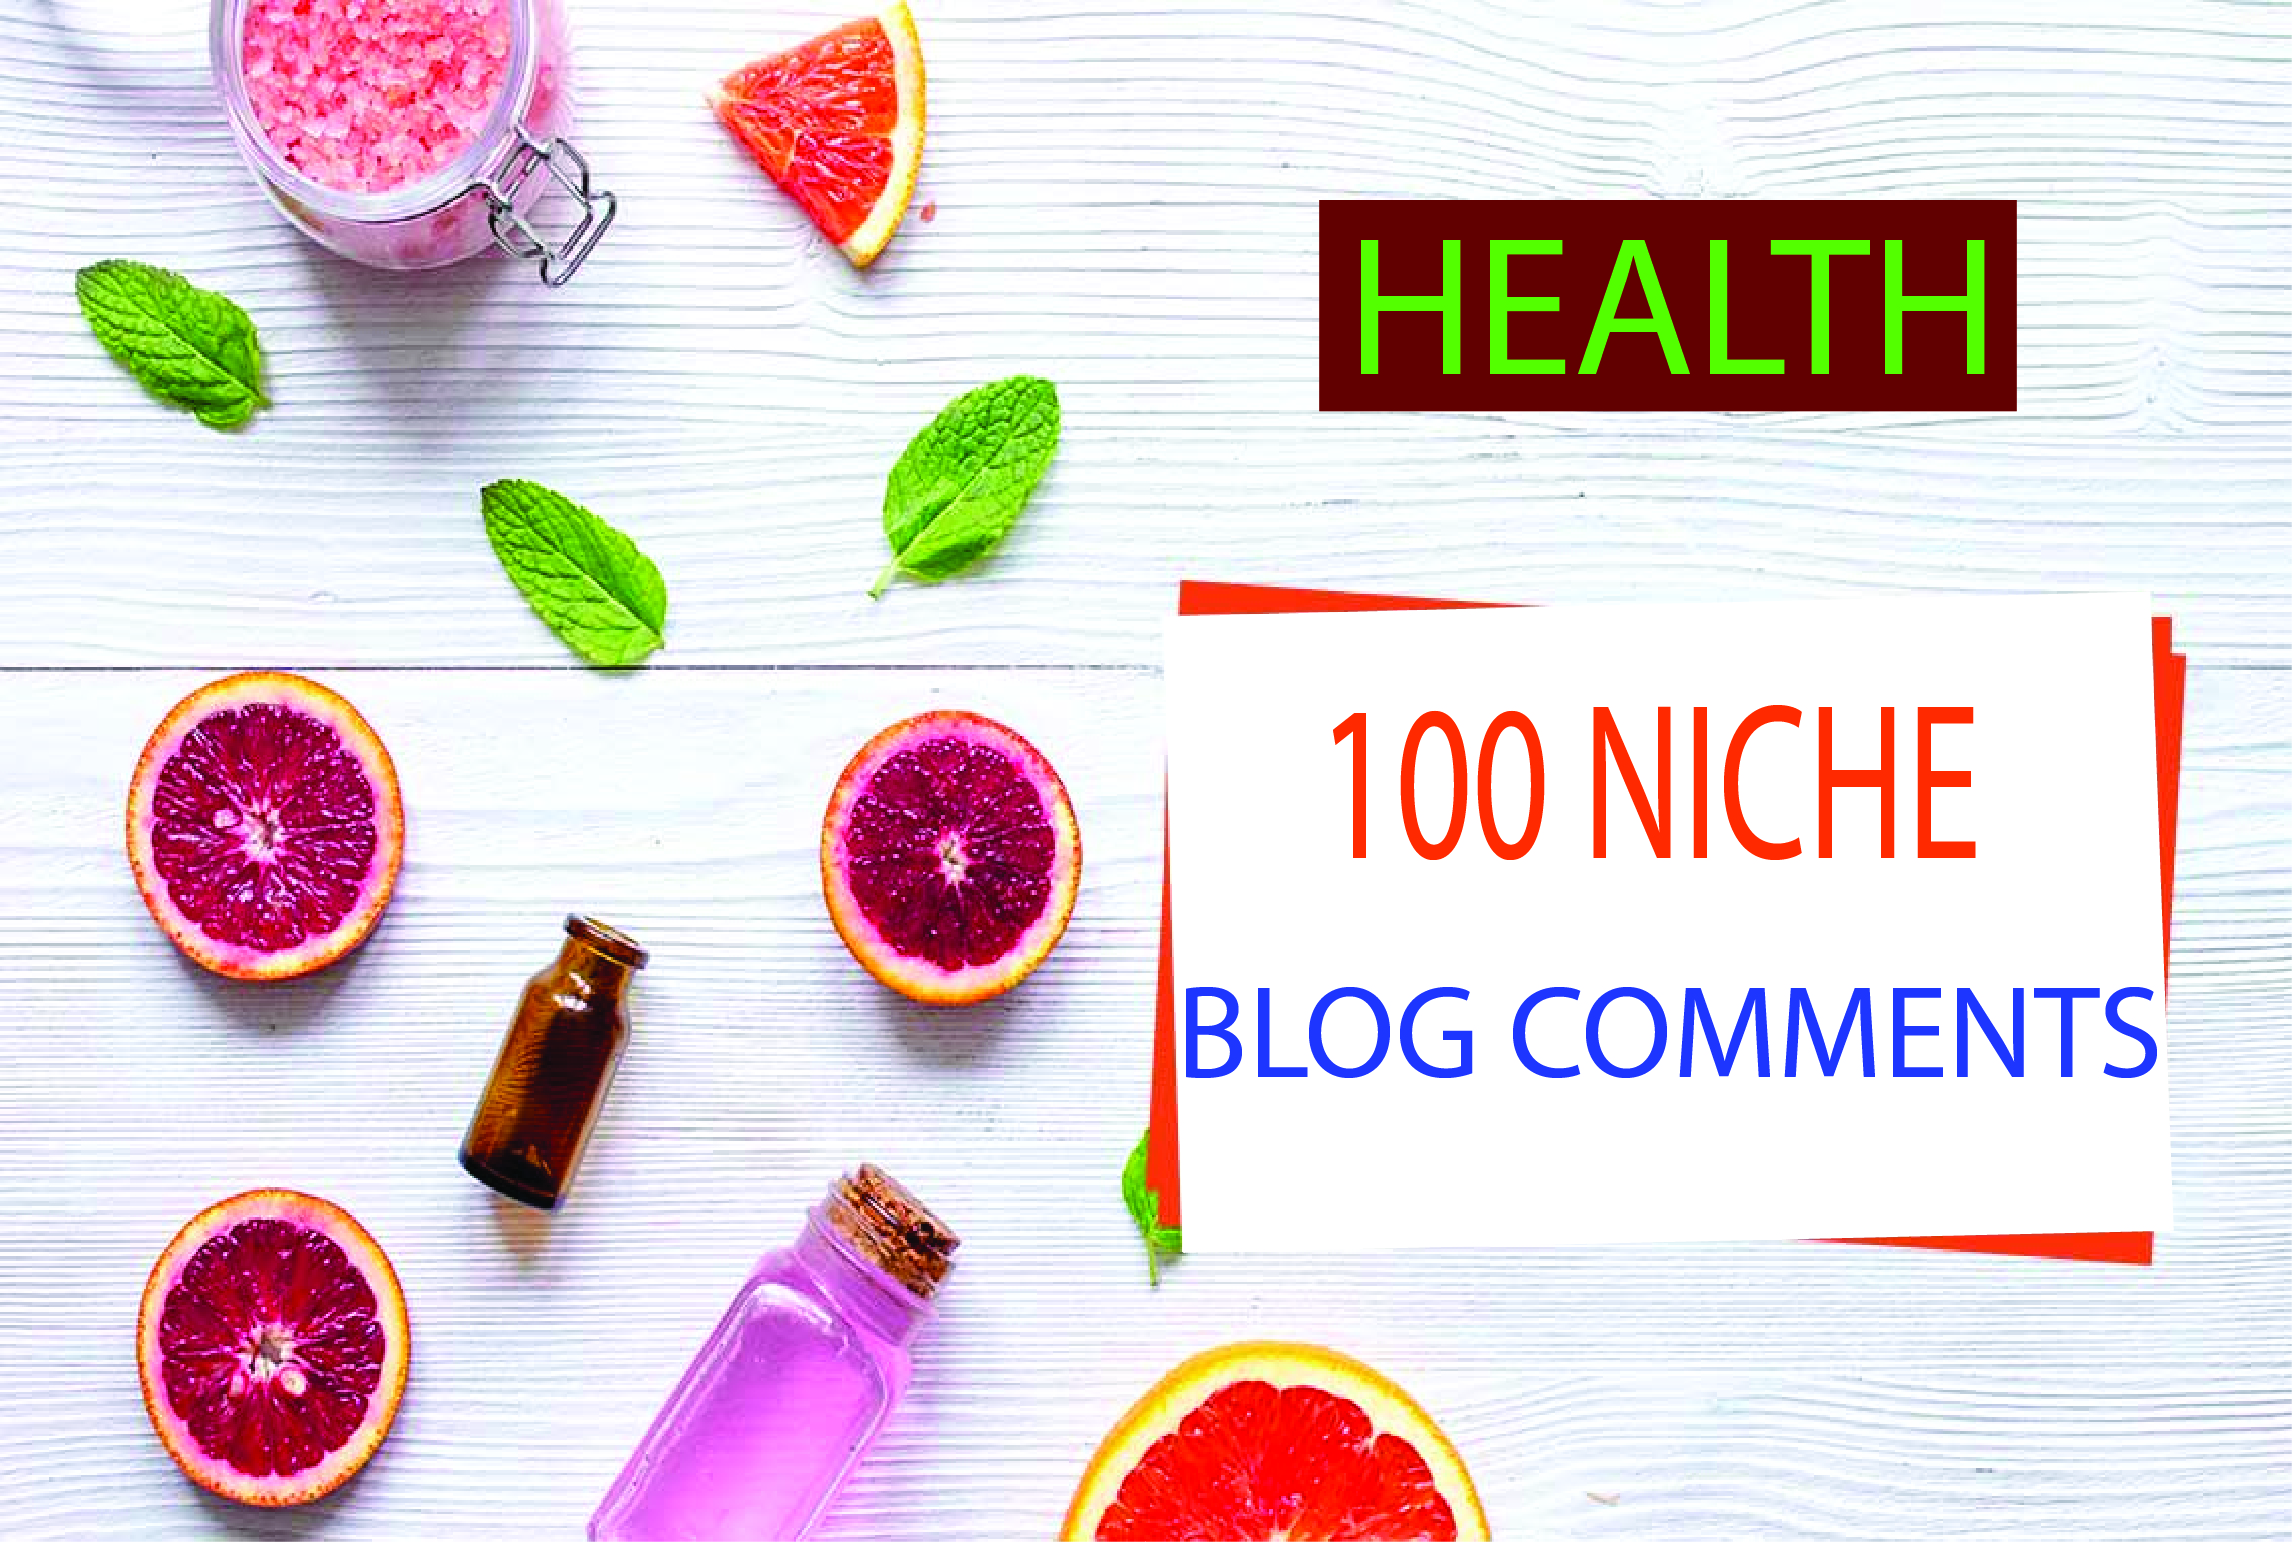 Create 100 manual blog comment backlinks in health niche